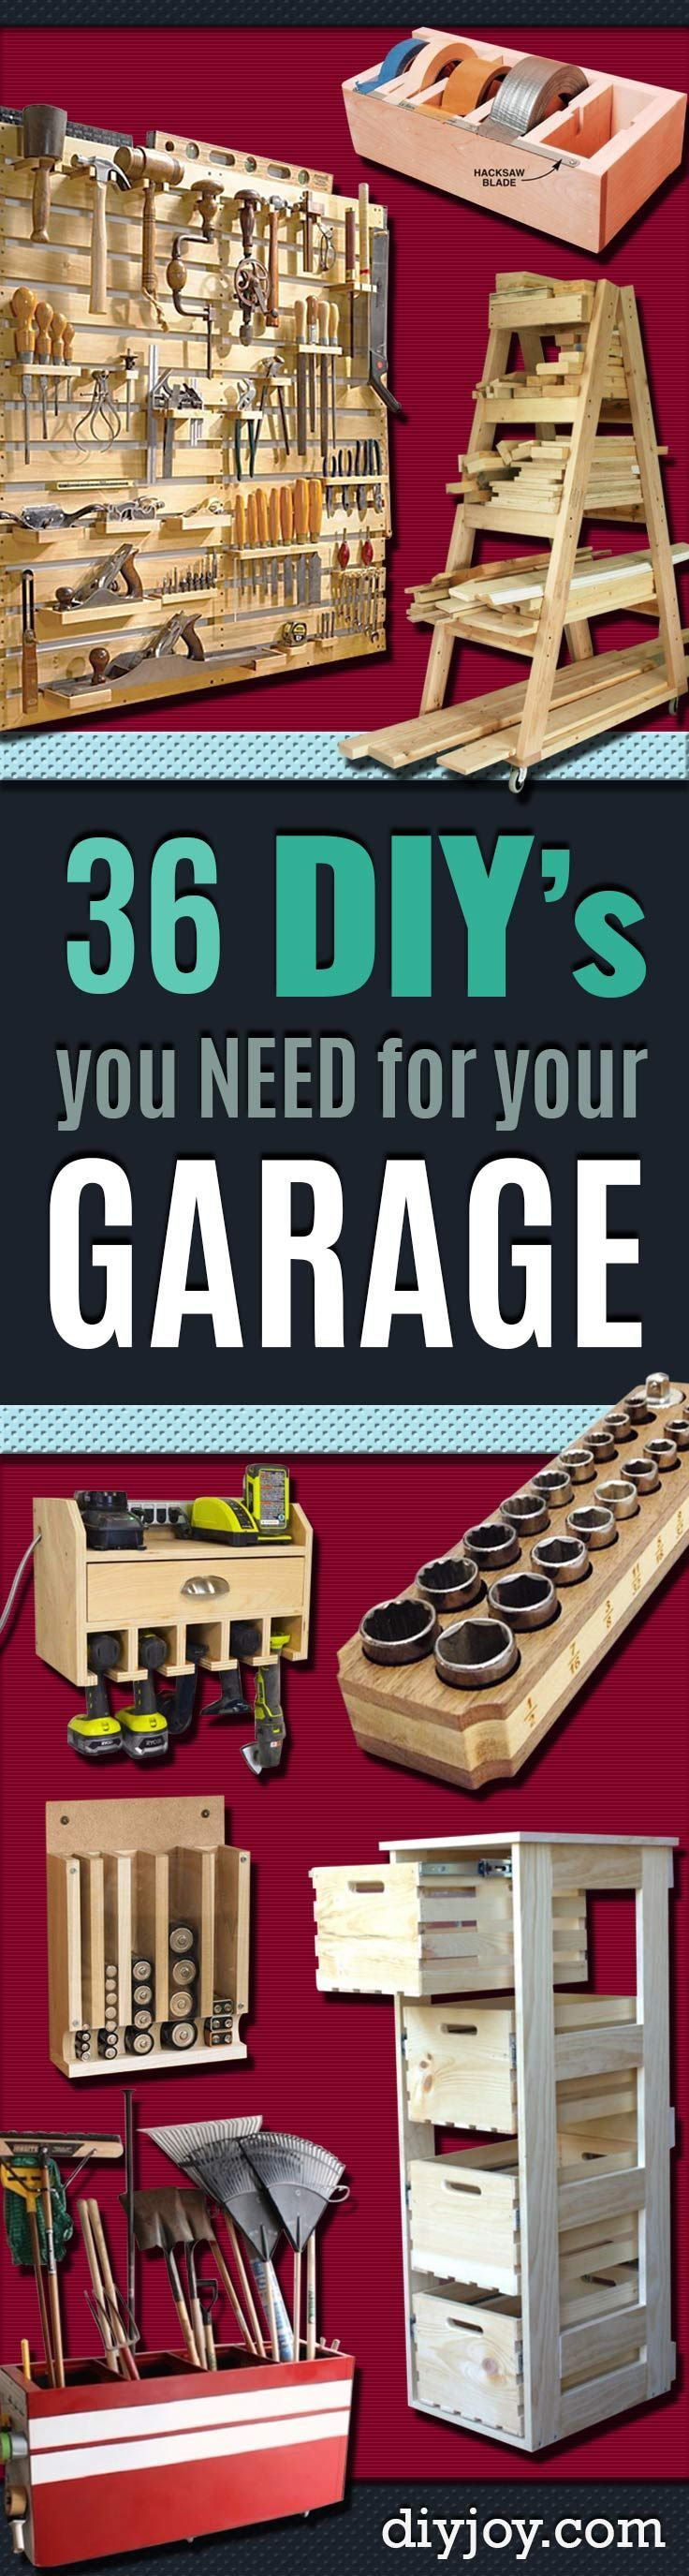 #woodworkingplans #woodworking #woodworkingprojects DIY Projects Your Garage Needs -Do It Yourself Garage Makeover Ideas Include Storage, Organization, Shelves, and Project Plans for Cool New Garage Decor diyjoy.com/...